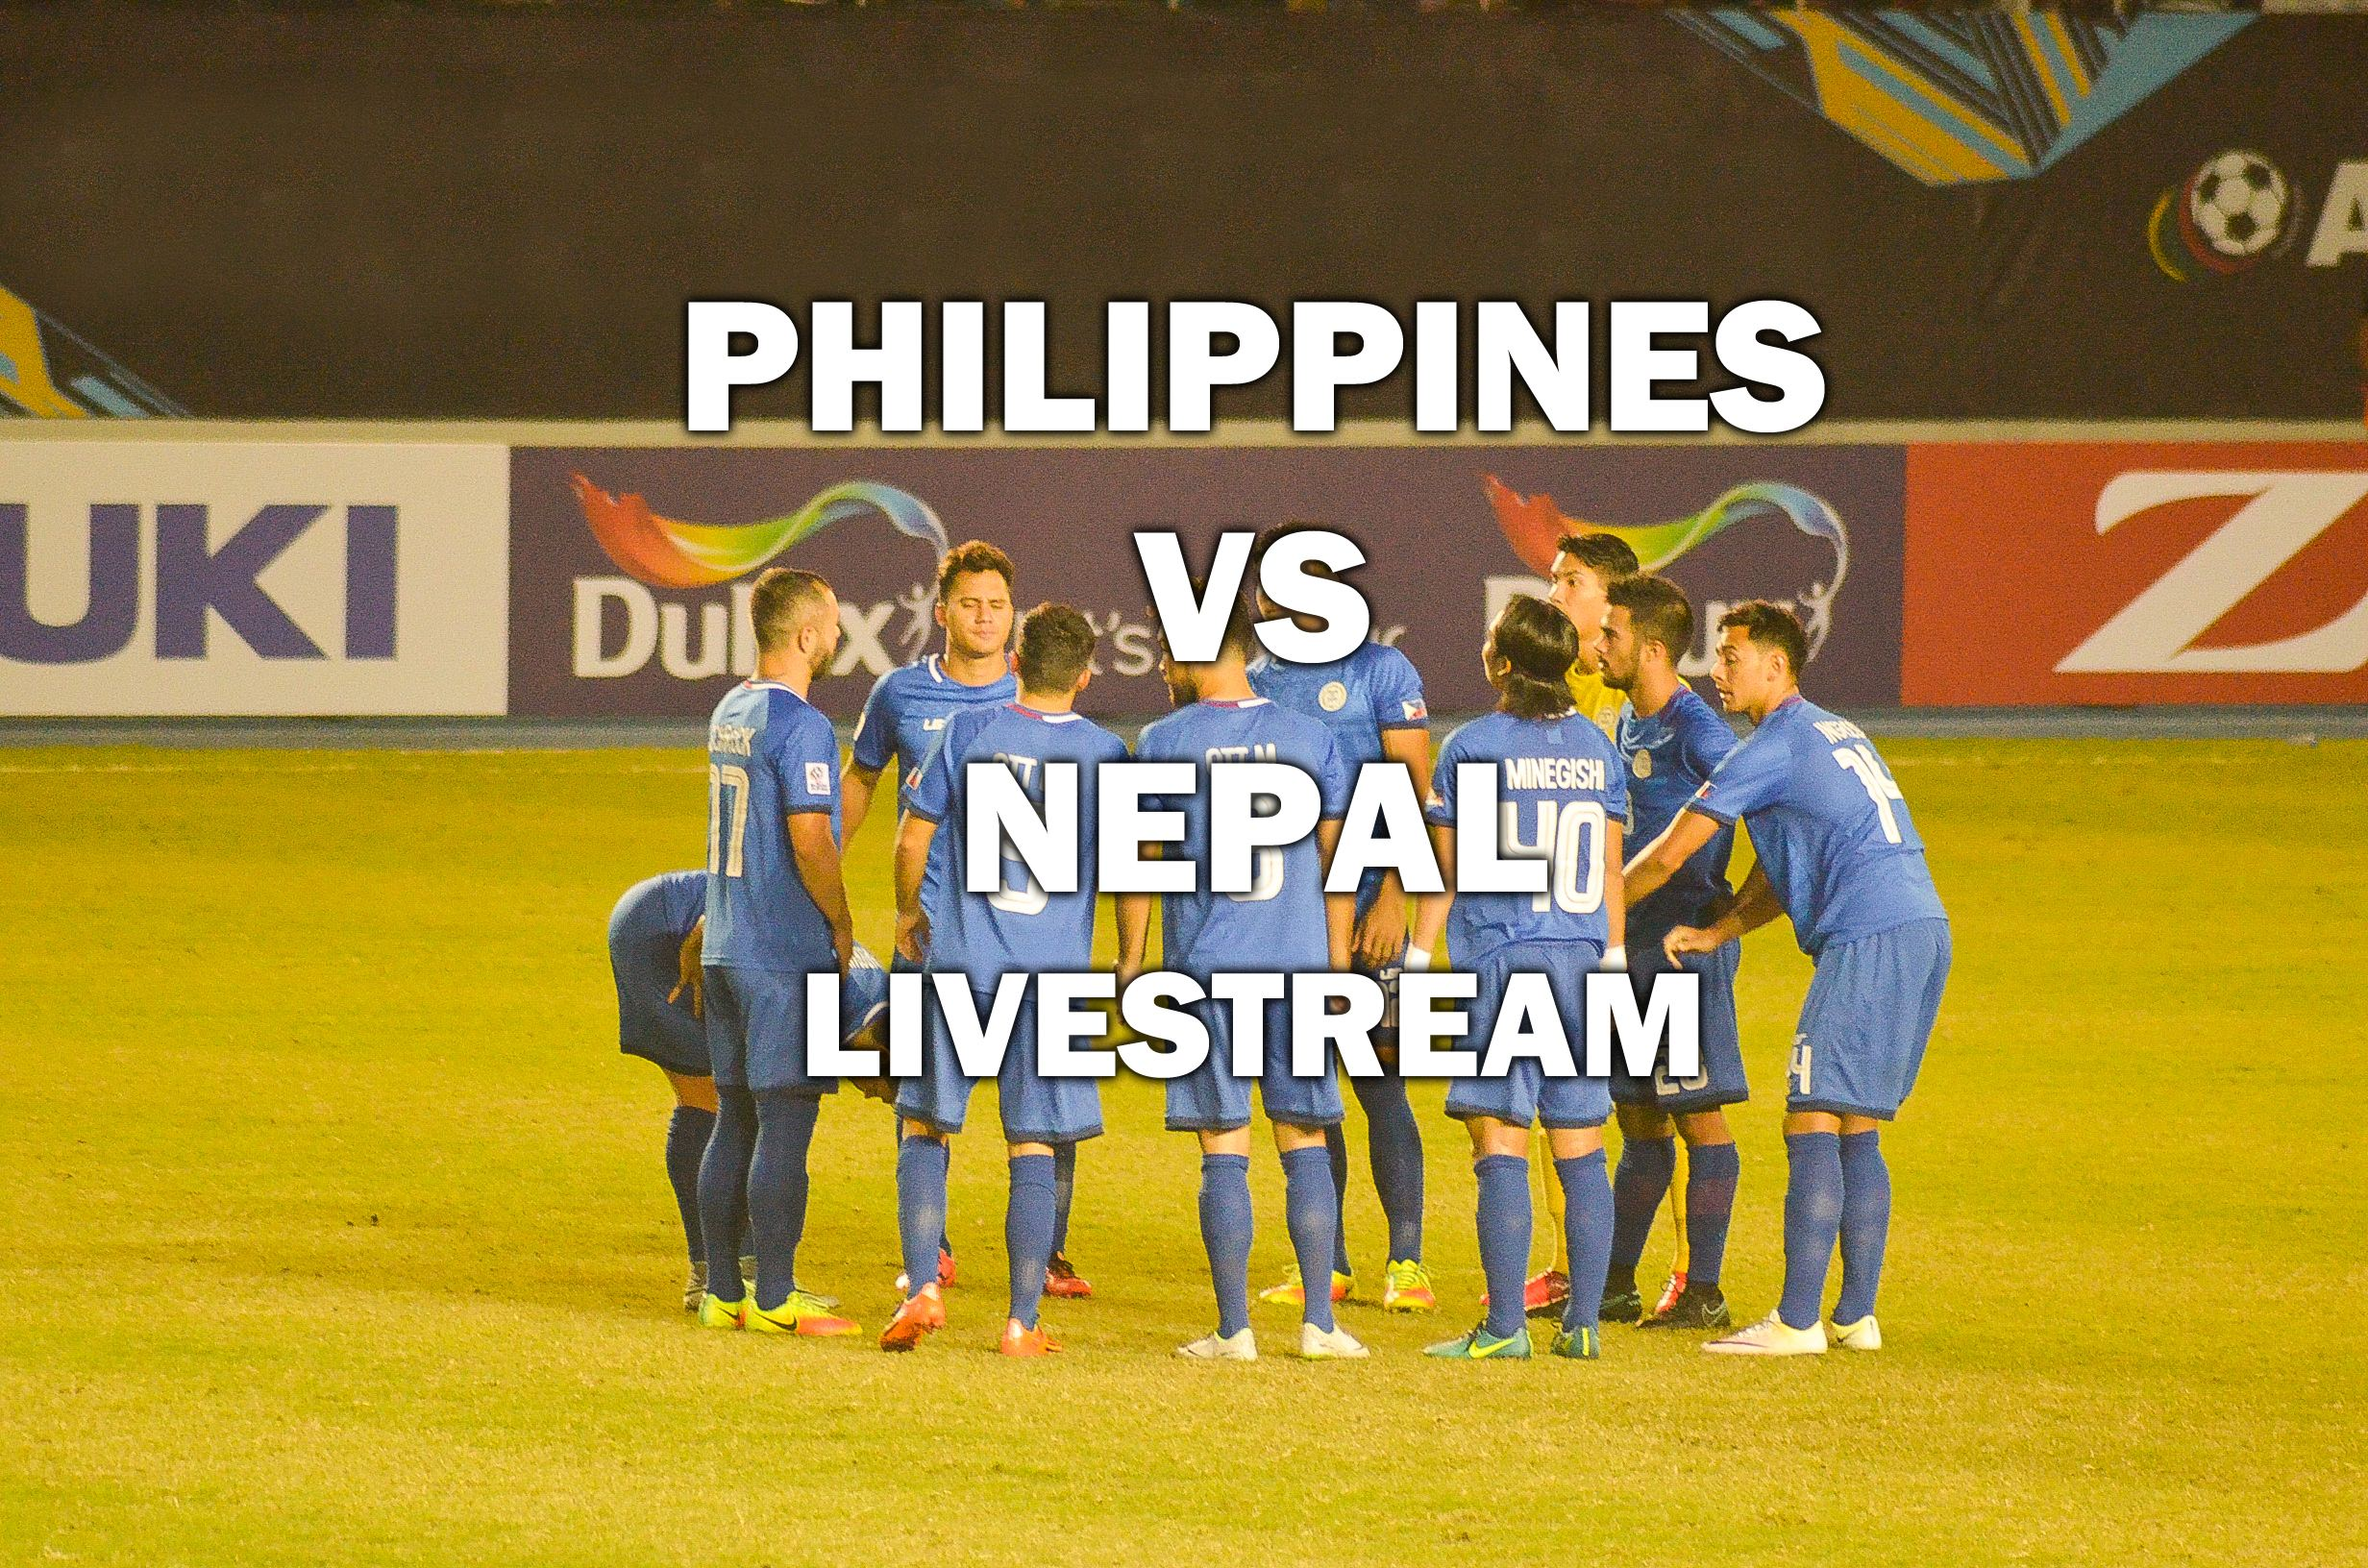 Philippines vs Nepal livestream